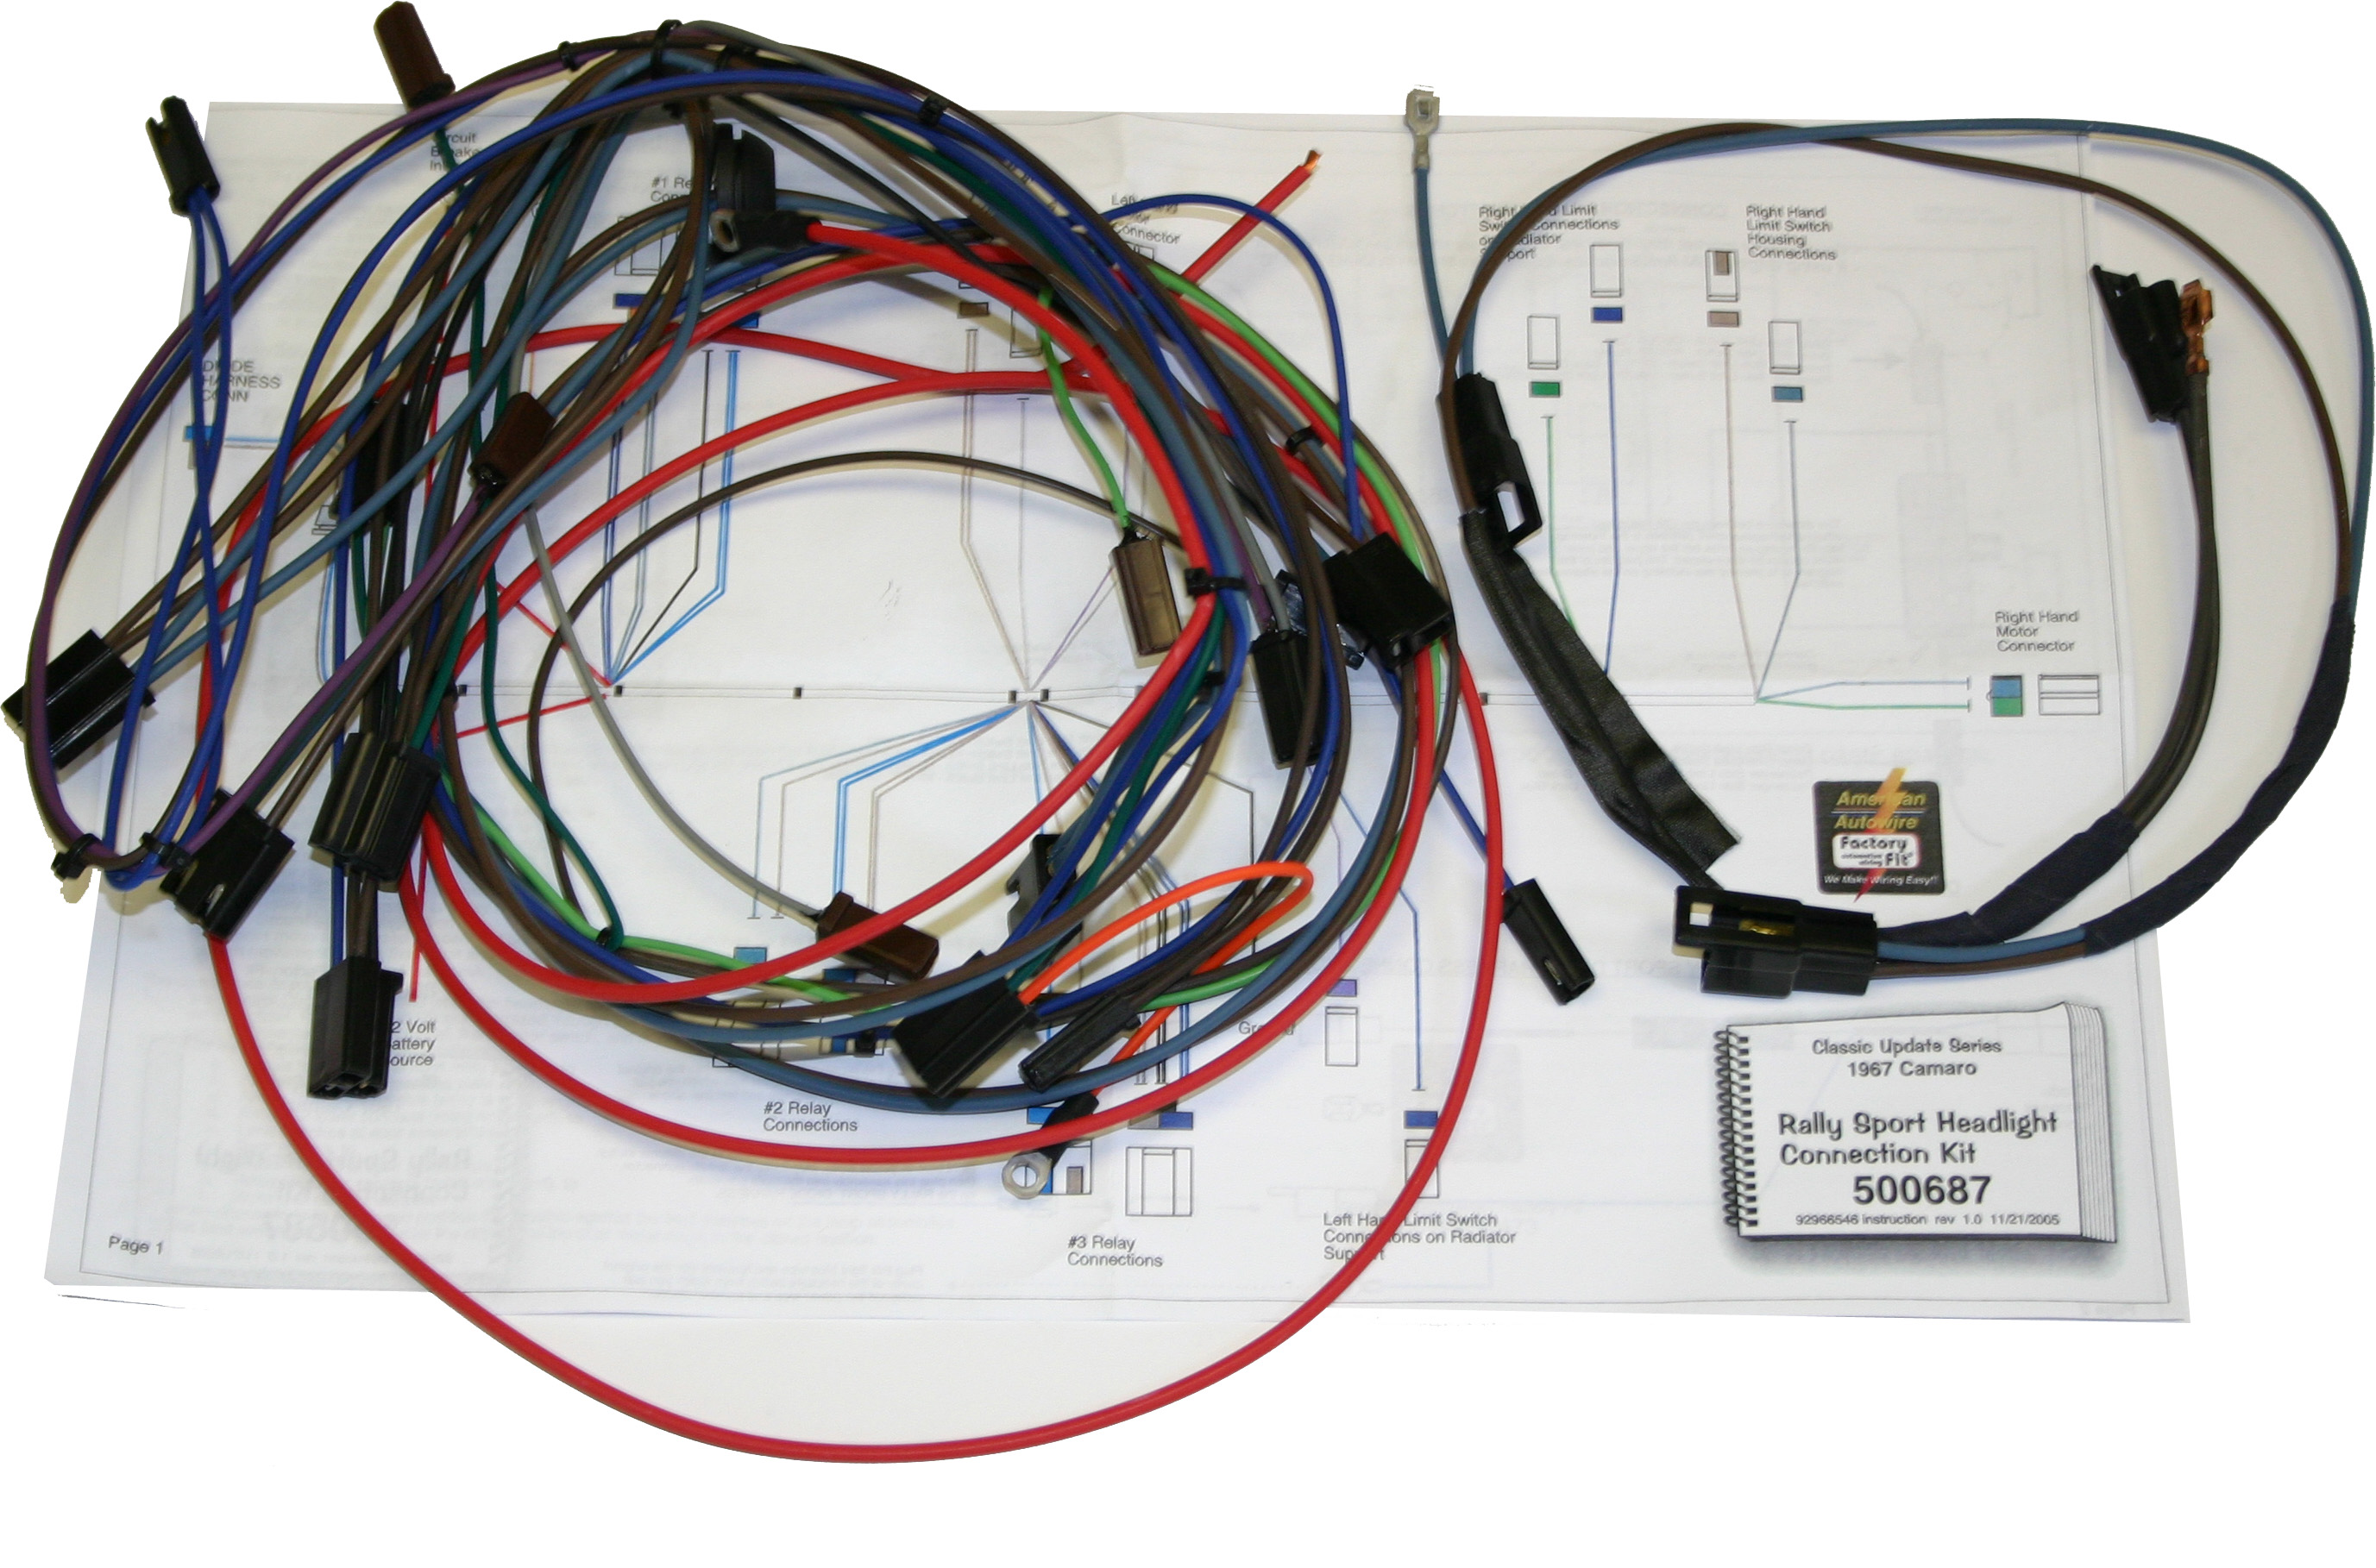 500773 68 camaro rear wiring harness 1968 camaro ignition circuit diagram 1969 camaro rear wiring harness at panicattacktreatment.co